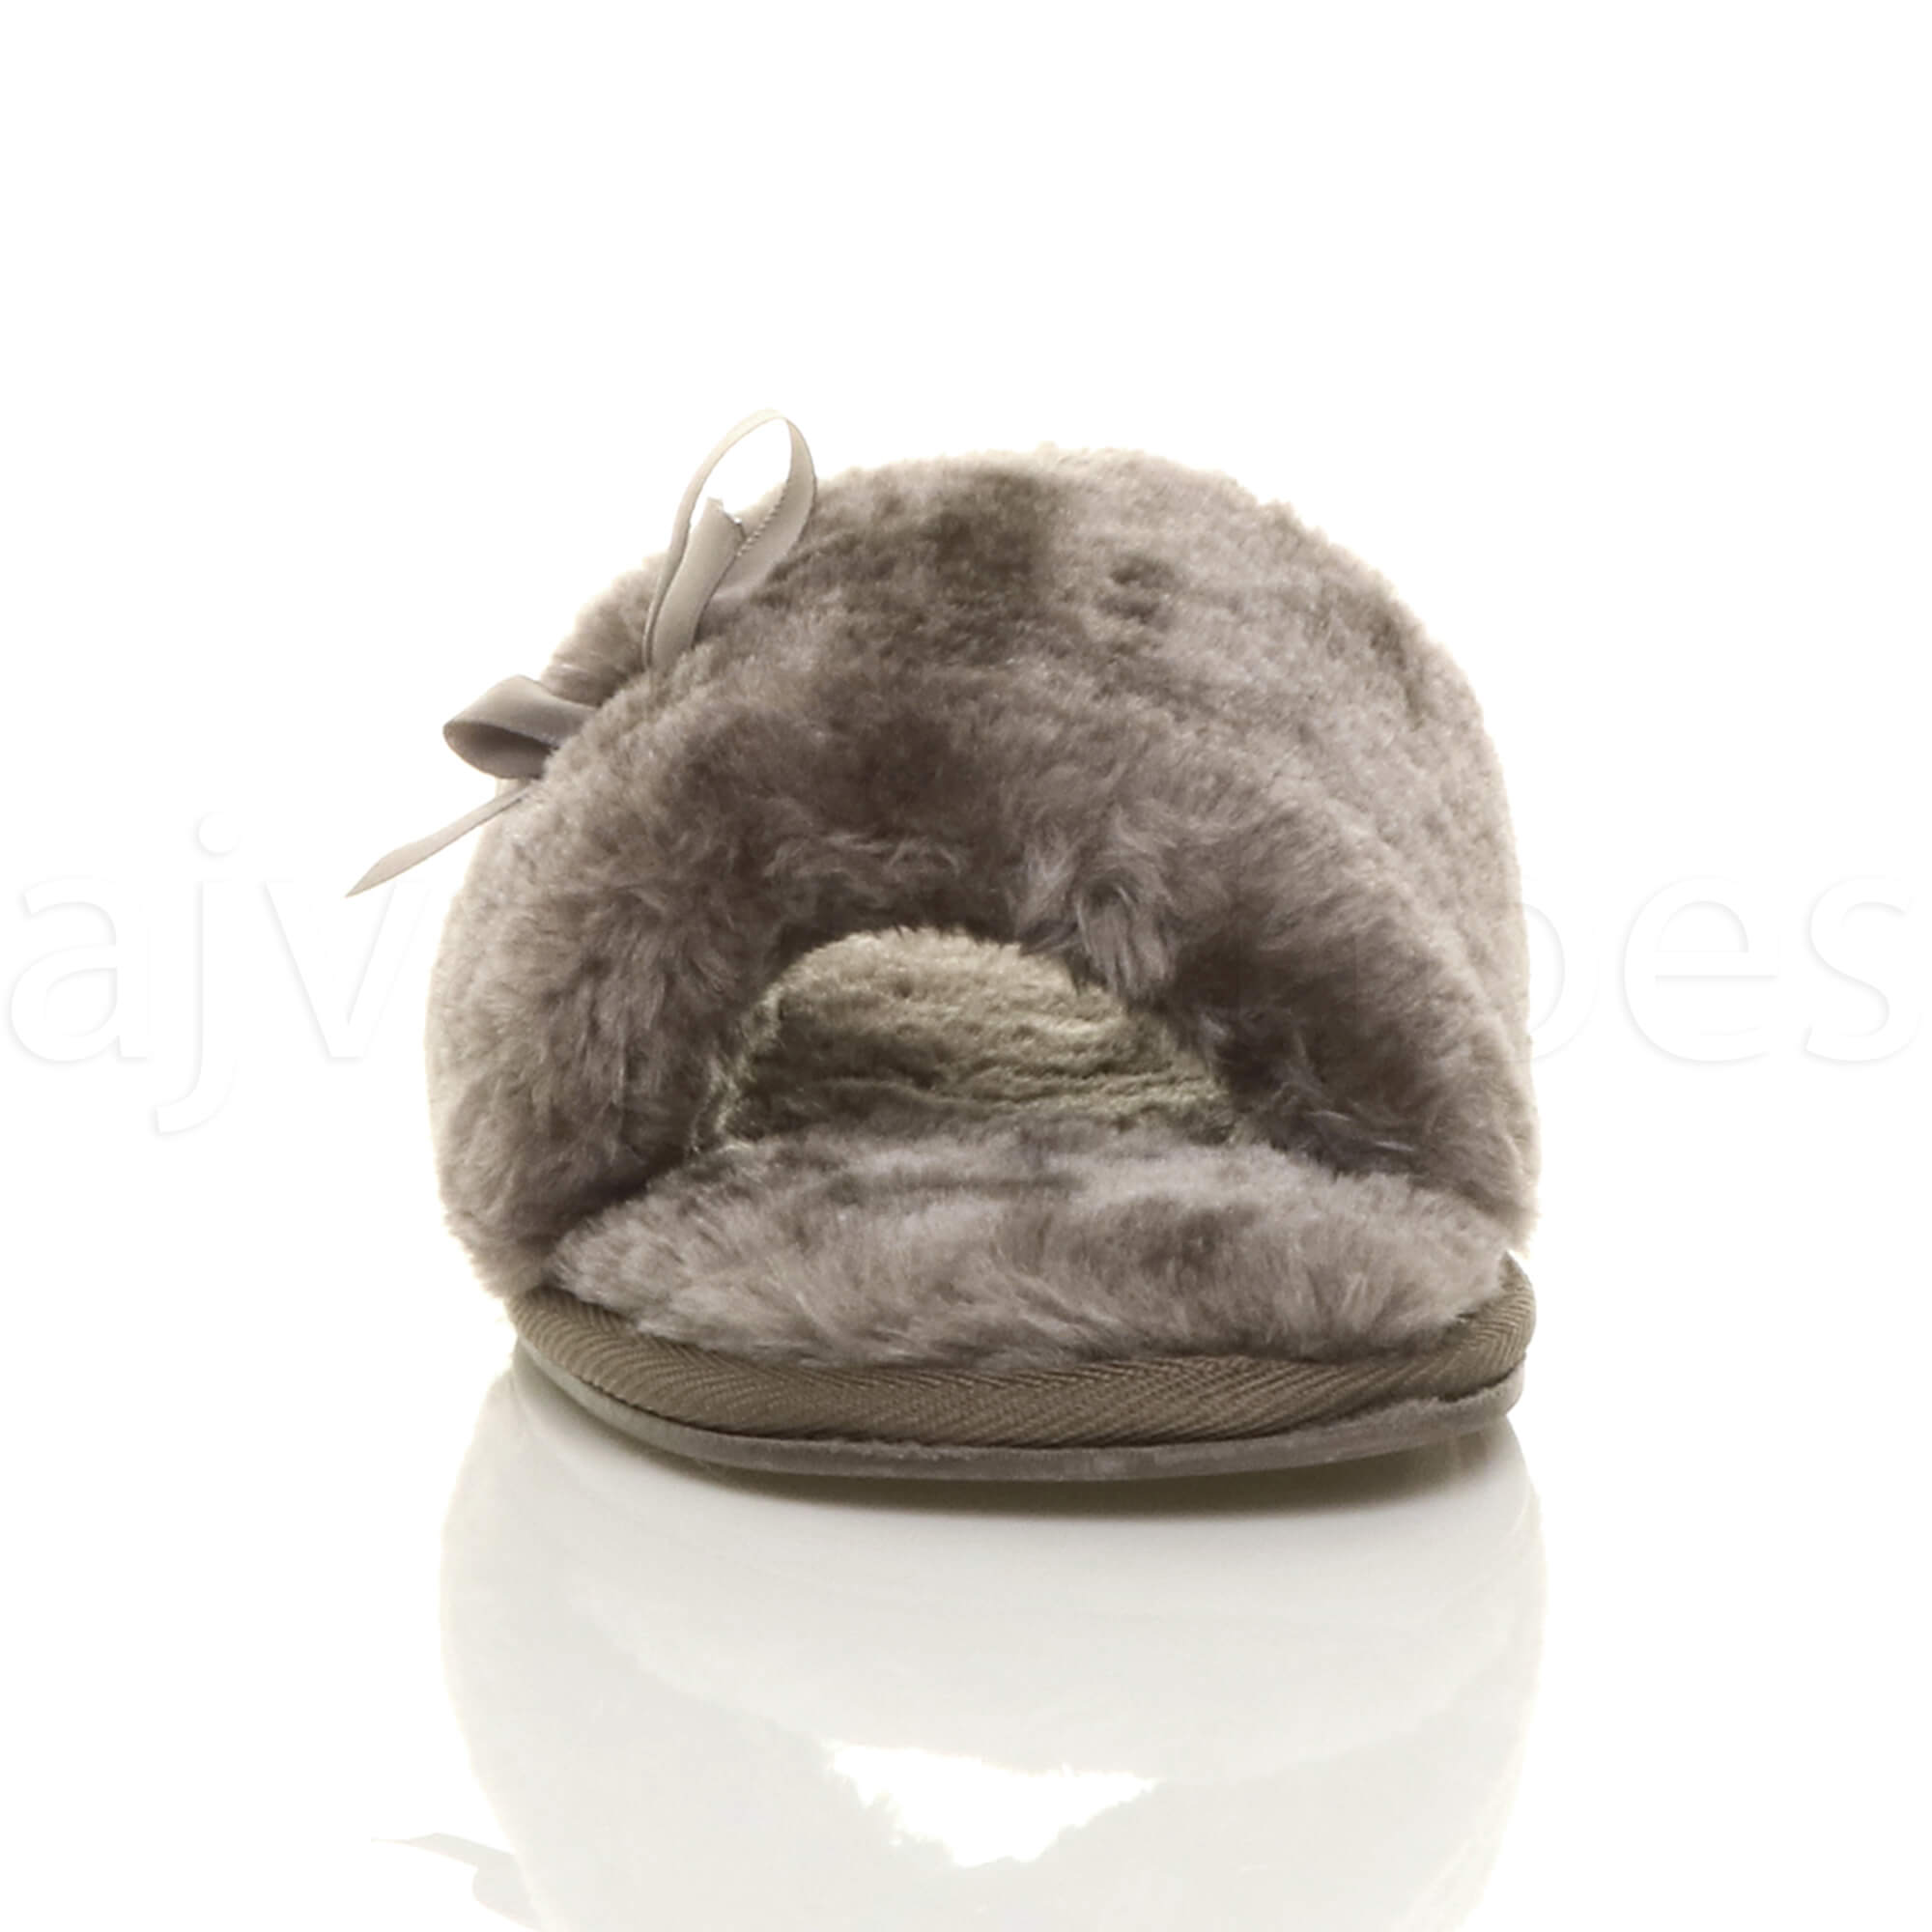 WOMENS-LADIES-FLAT-PEEP-TOE-BOW-LUXURY-COSY-FUR-LINED-SLIP-ON-SLIPPERS-SIZE thumbnail 39